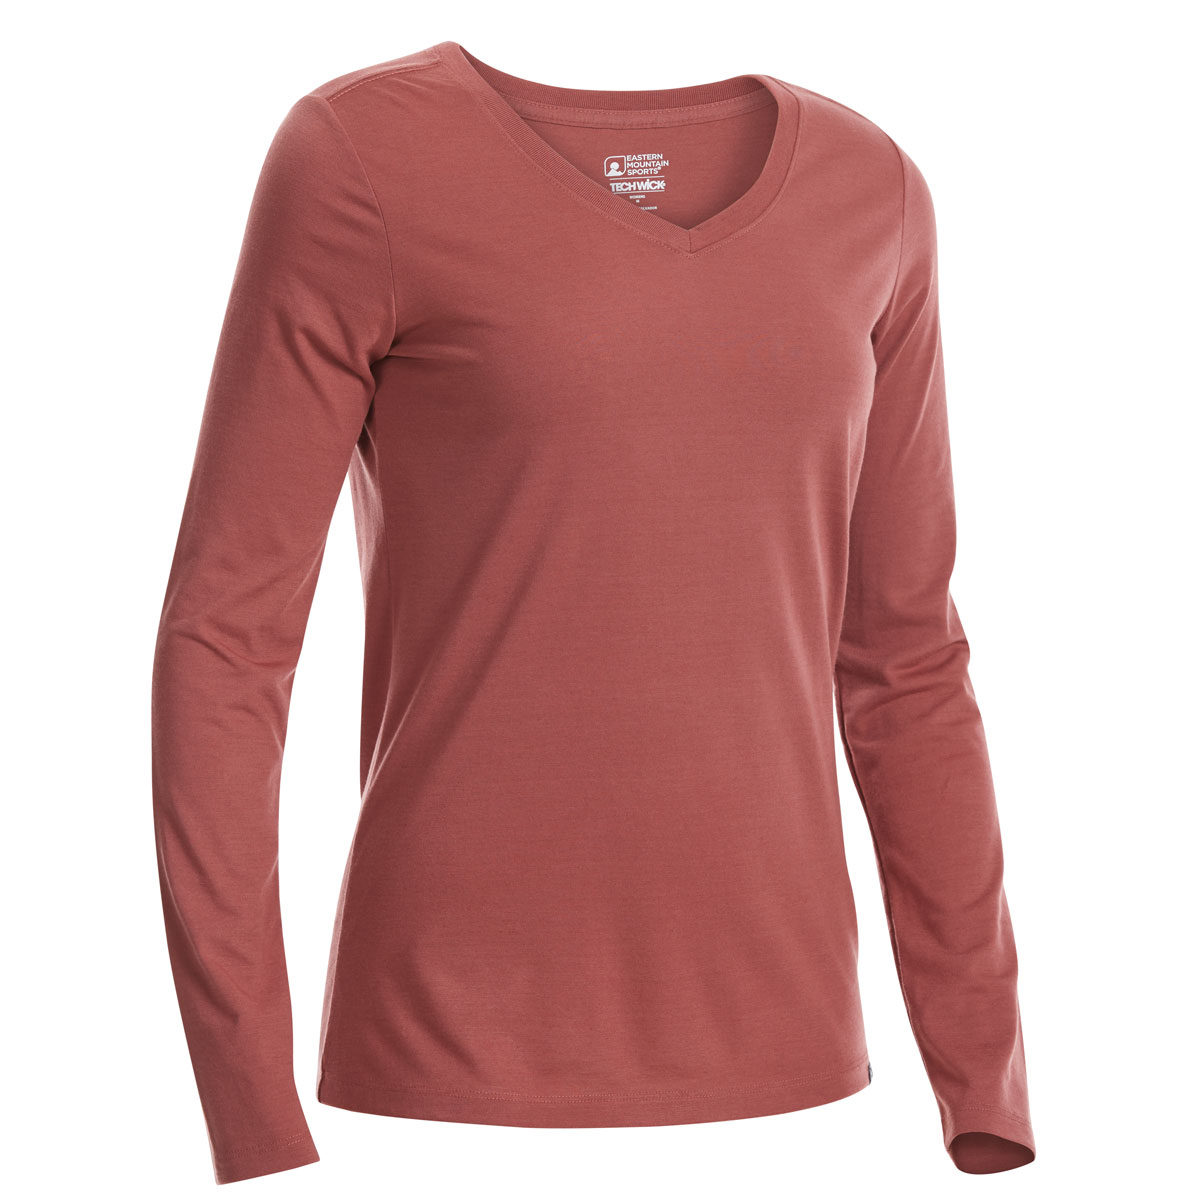 Ems Women's Techwick Vital V-Neck Long-Sleeve Tee - Red, XL